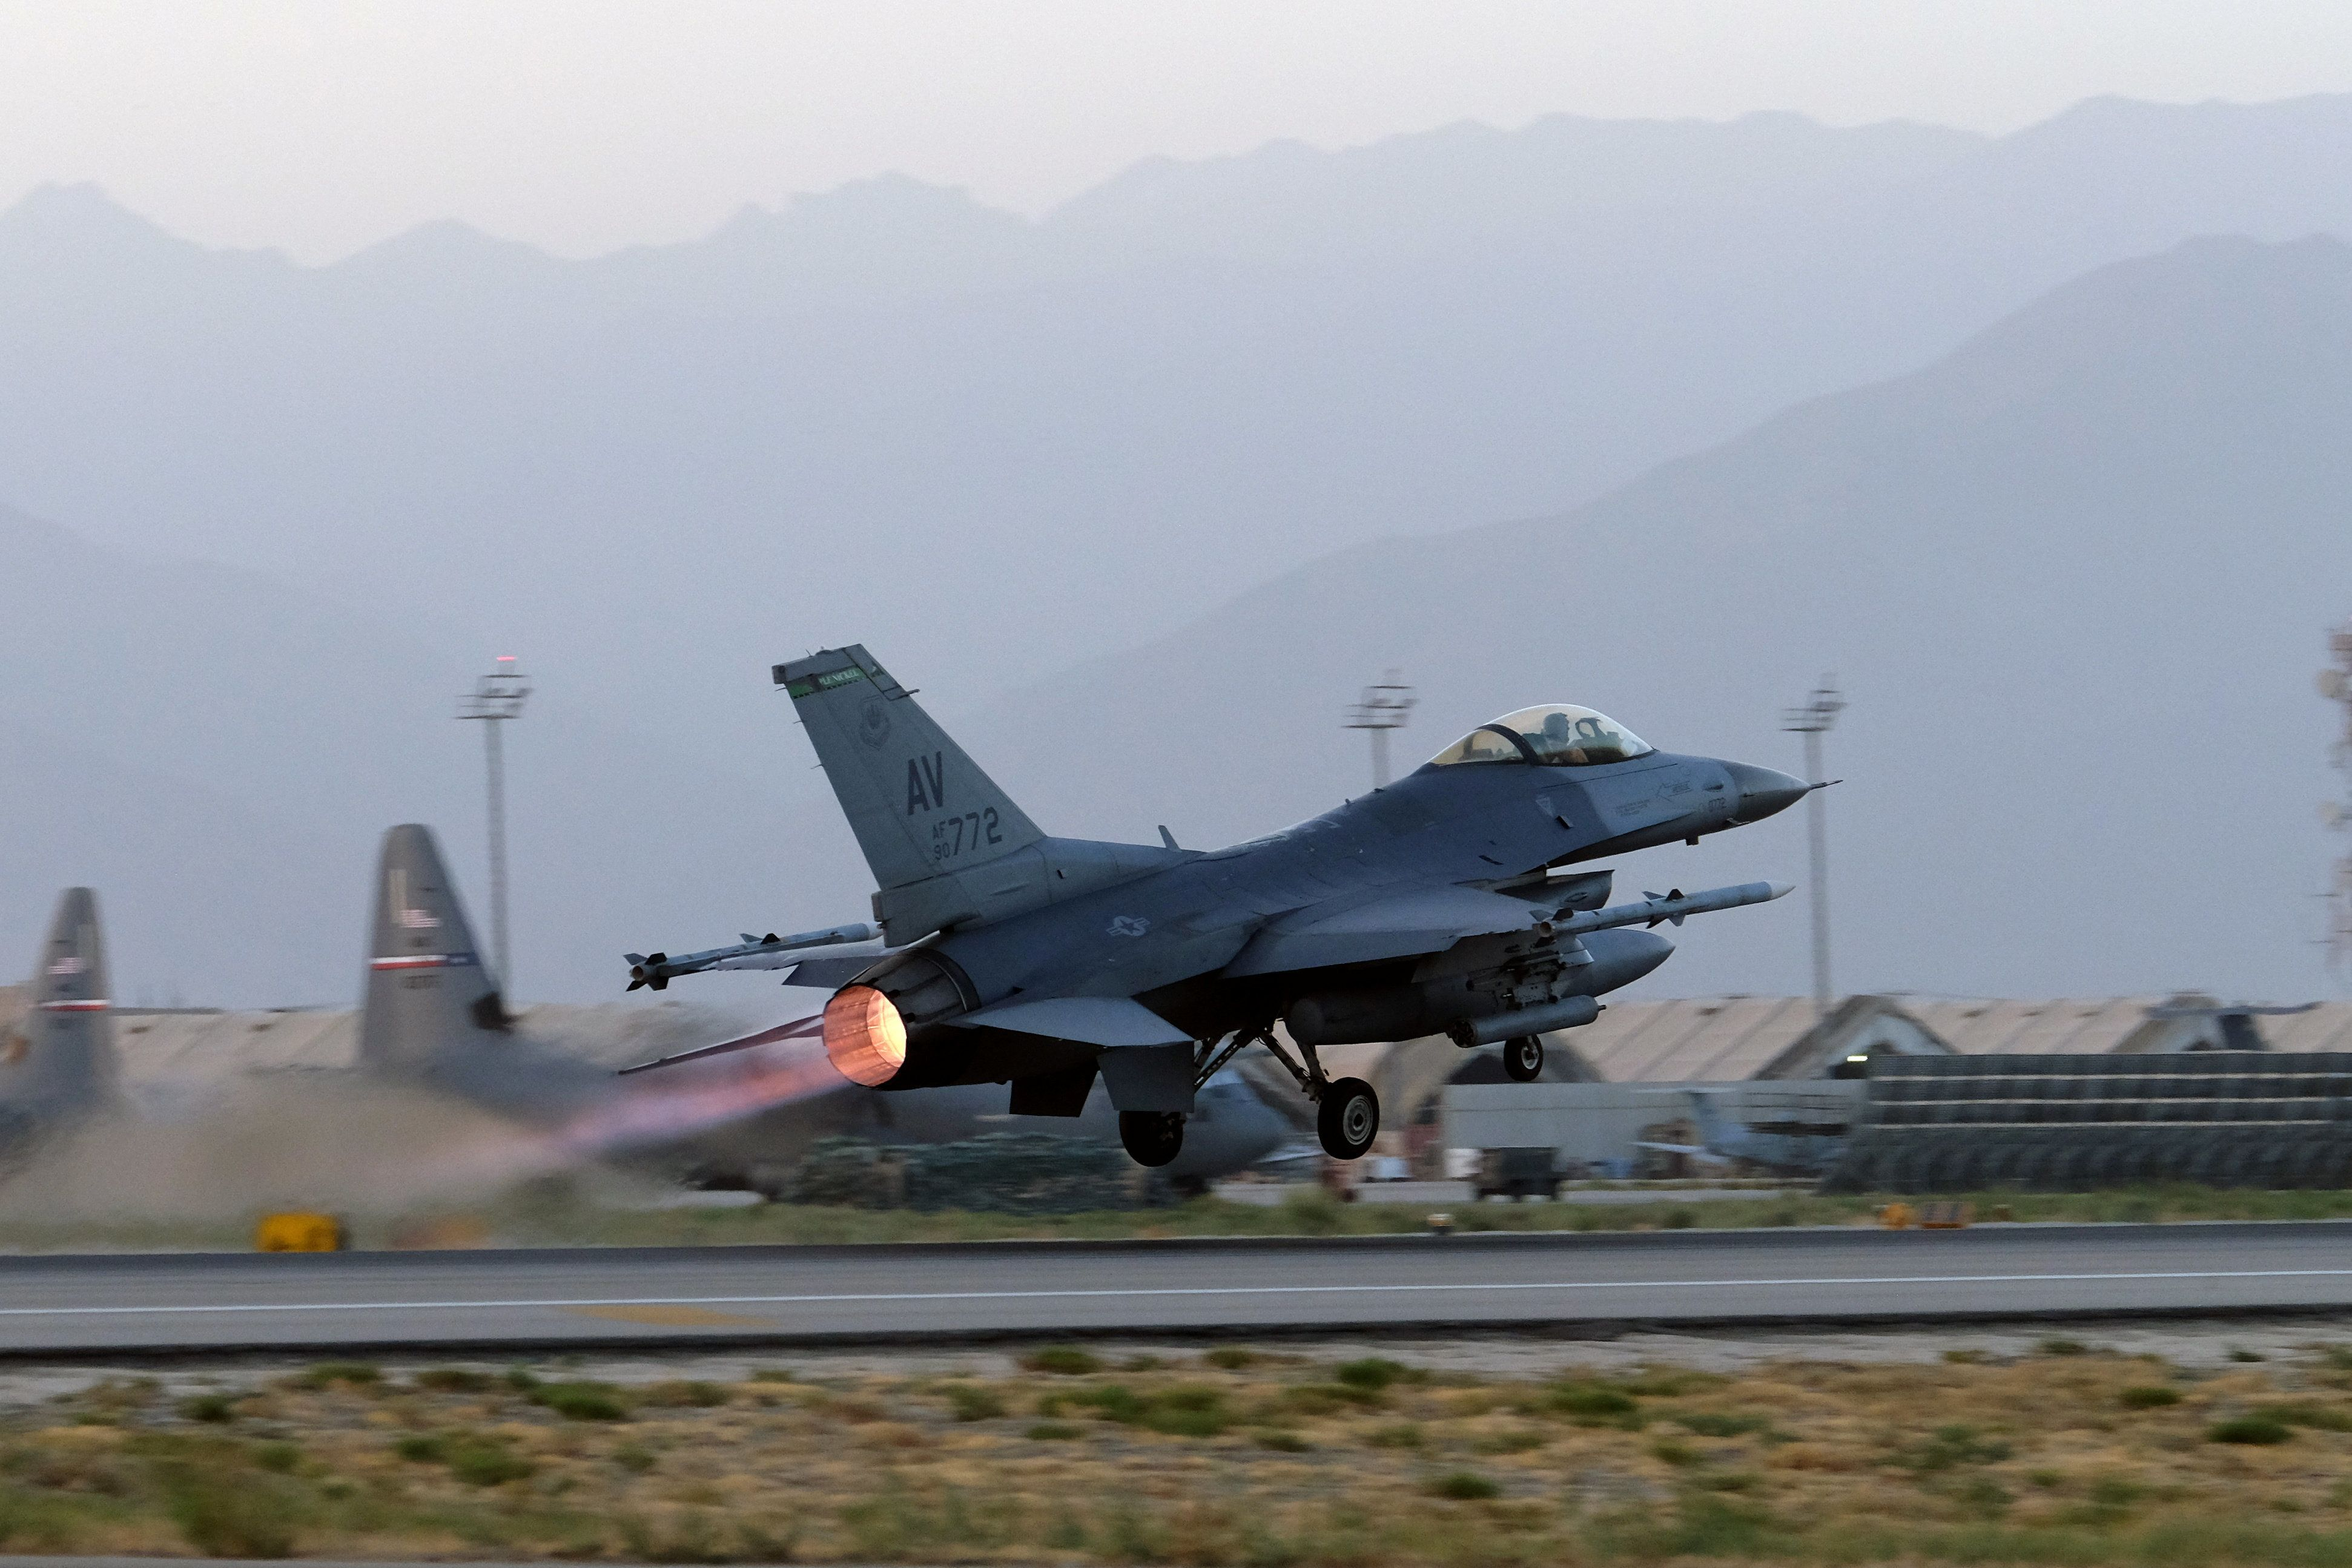 A U.S. Air Force F-16 Fighting Falcon aircraft takes off for a nighttime mission at Bagram Airfield, Afghanistan, August 22, 2017. Picture taken August 22, 2017. REUTERS/Josh Smith